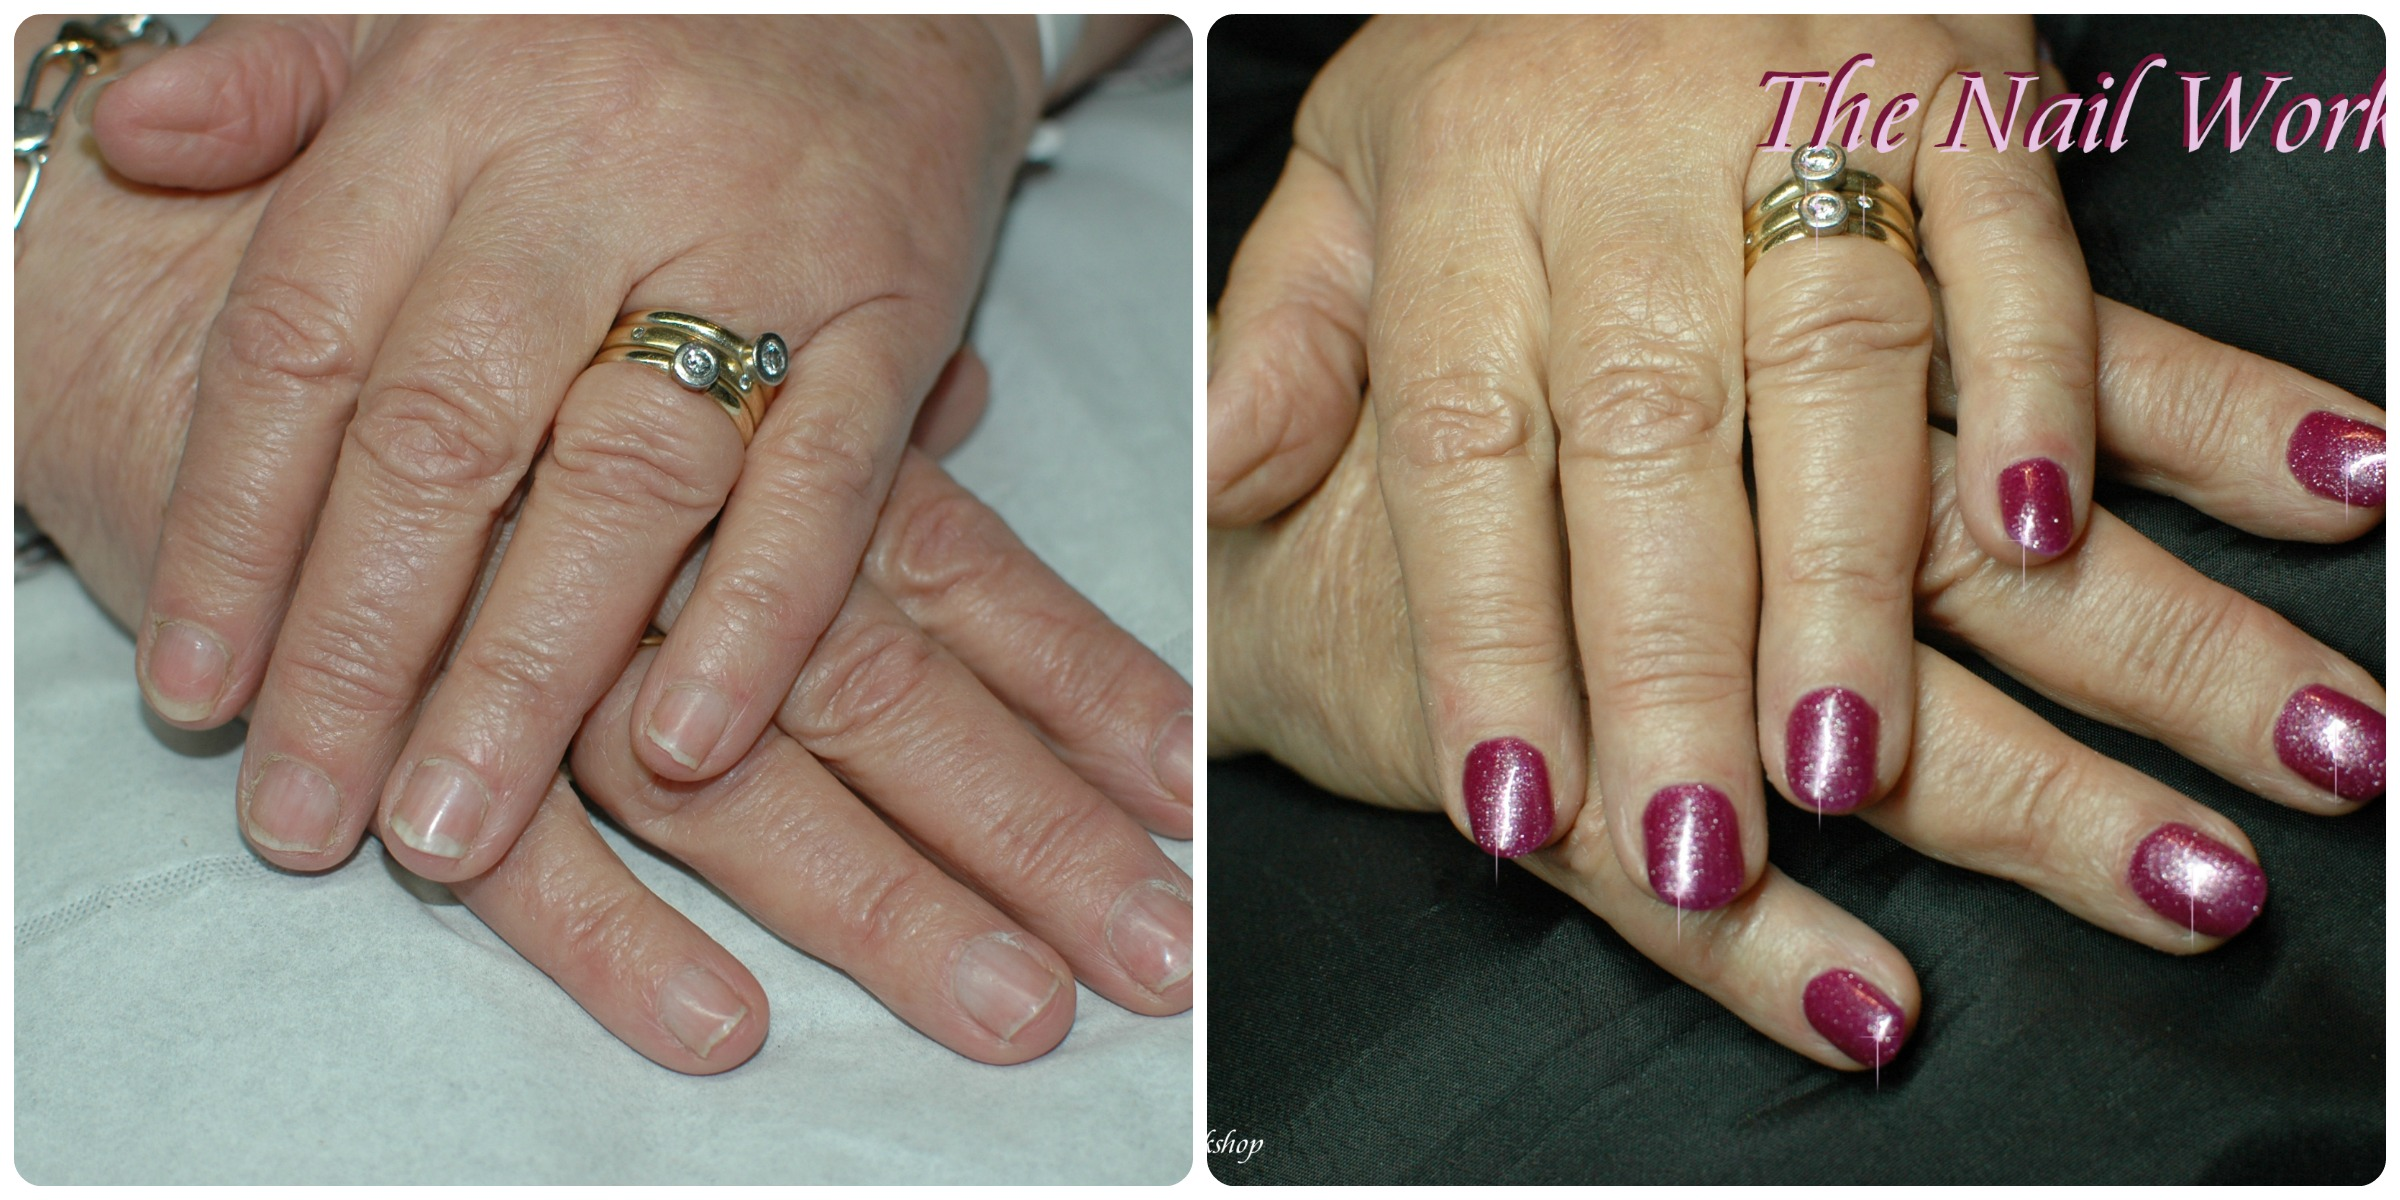 acrylic nails before and after photo - 1